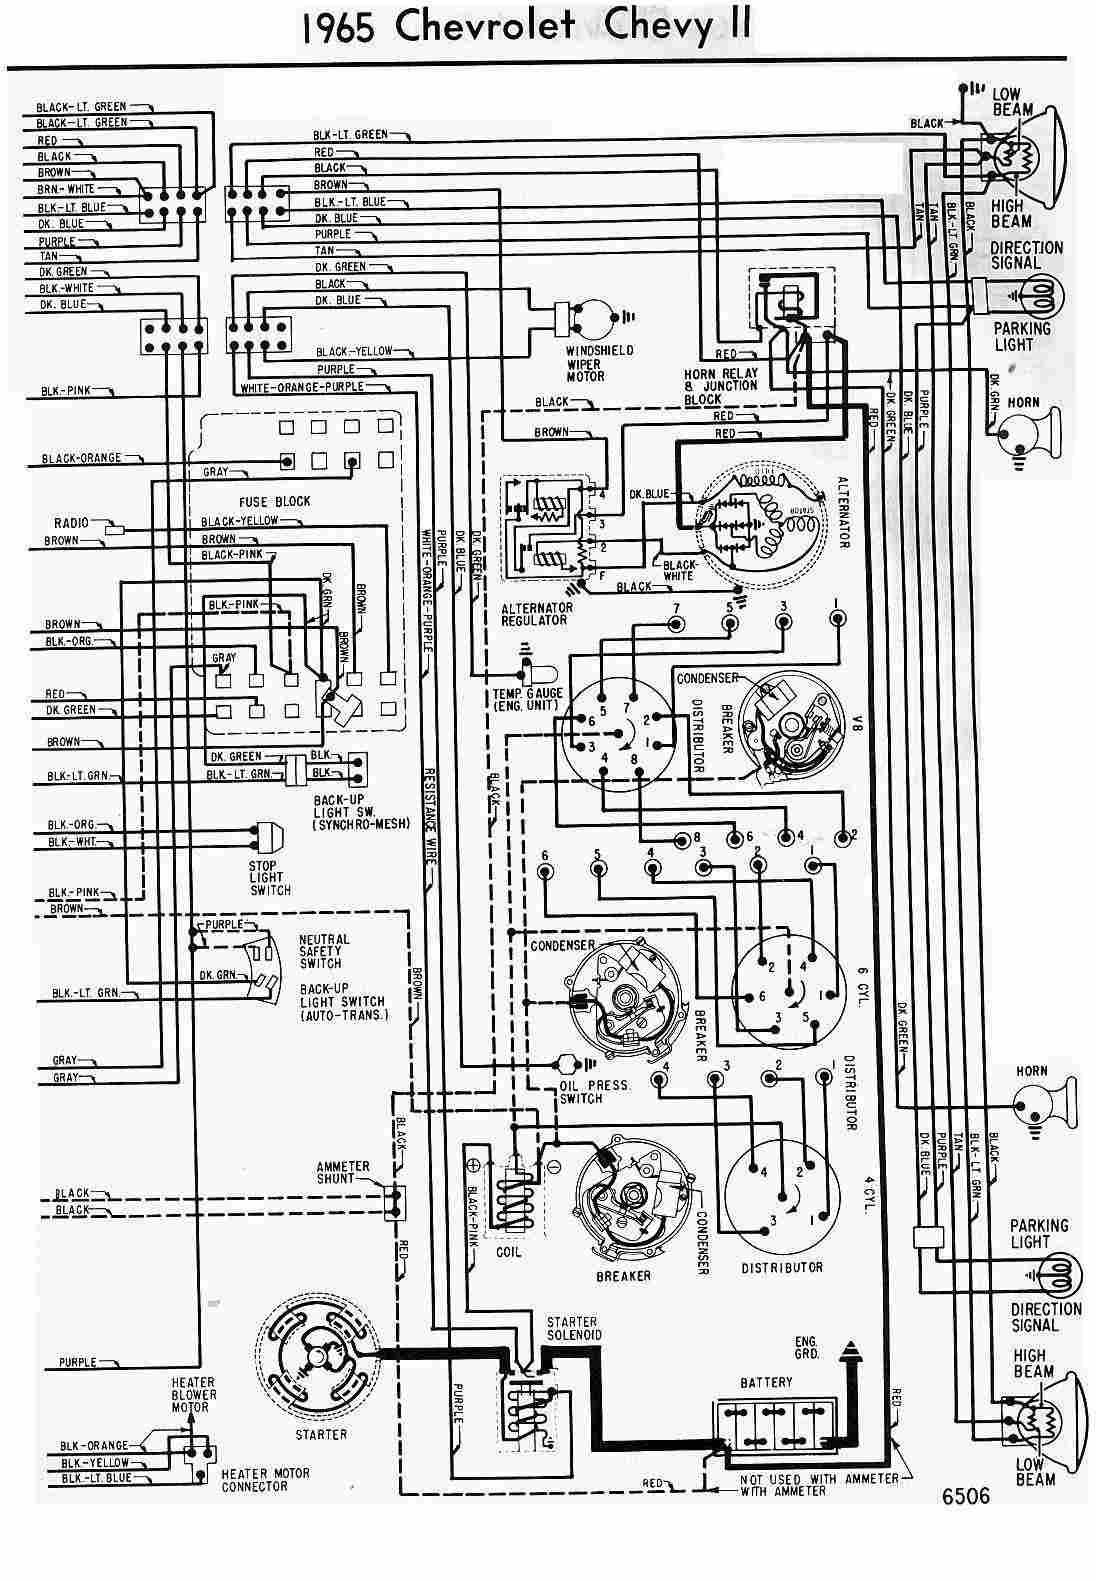 Chevrolet Car Manuals Wiring Diagrams Pdf Fault Codes Durant Diagram Download